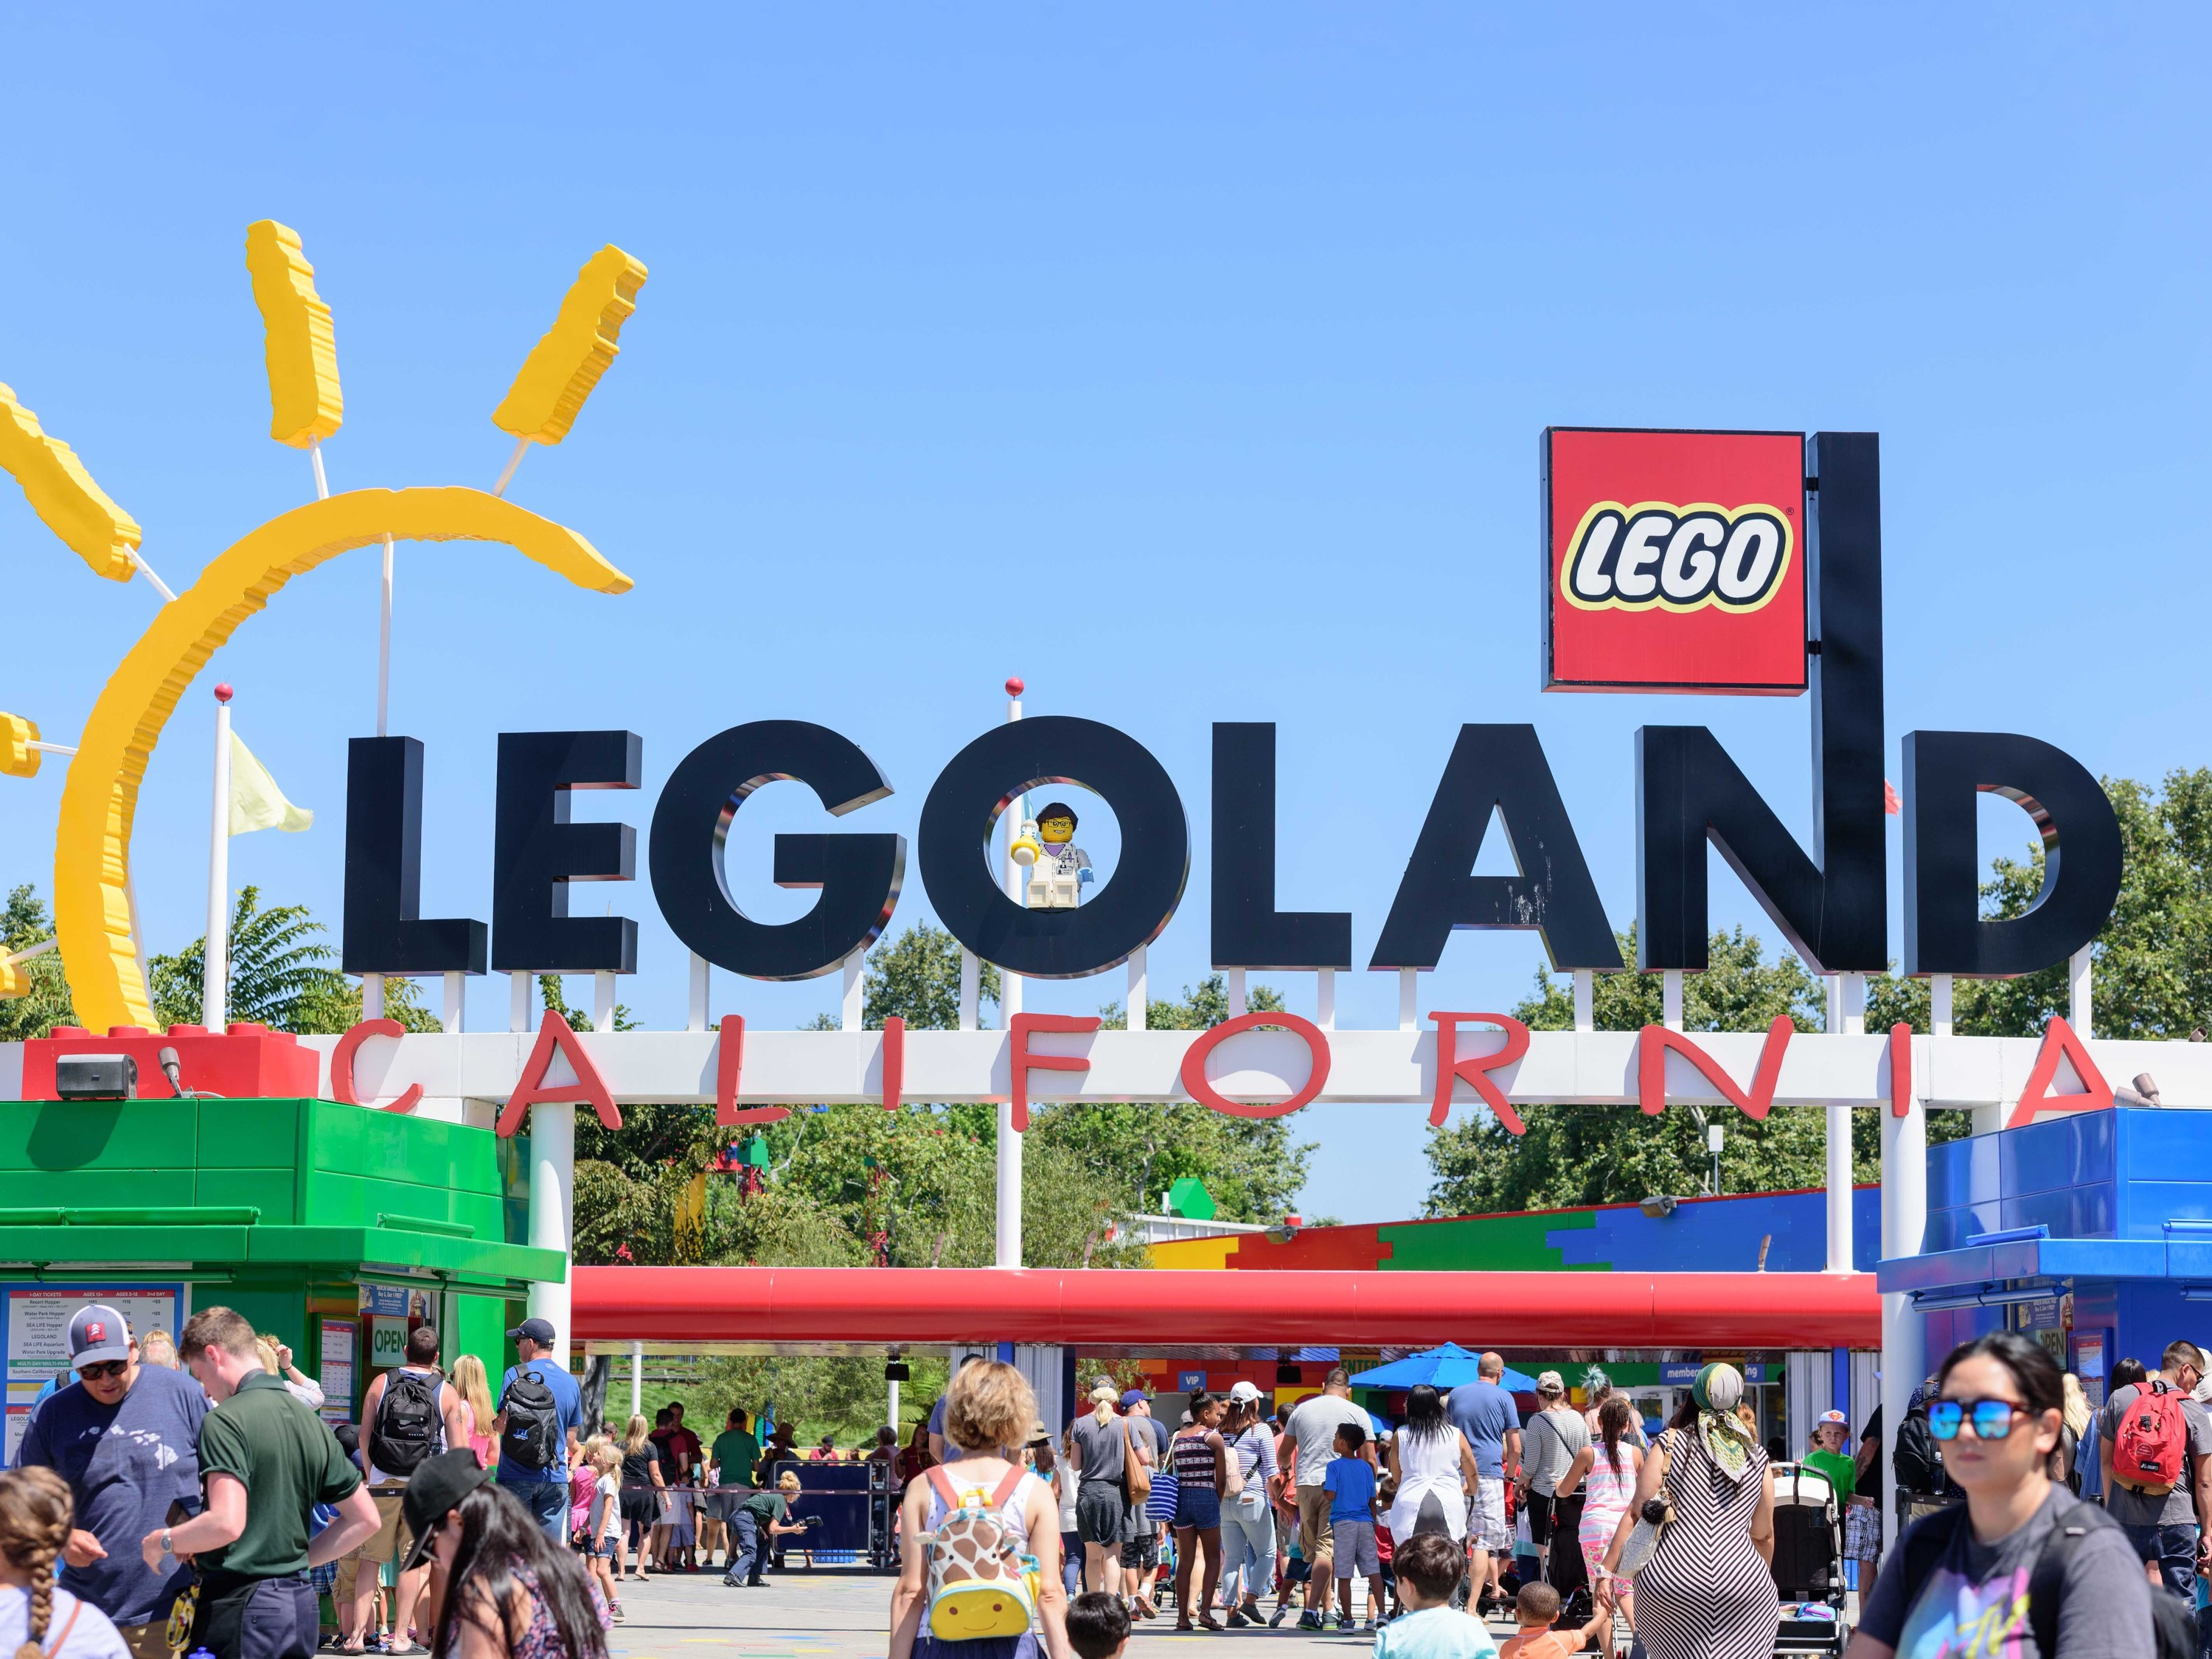 Legoland and other San Diego amusement parks are planning to reopen July 1